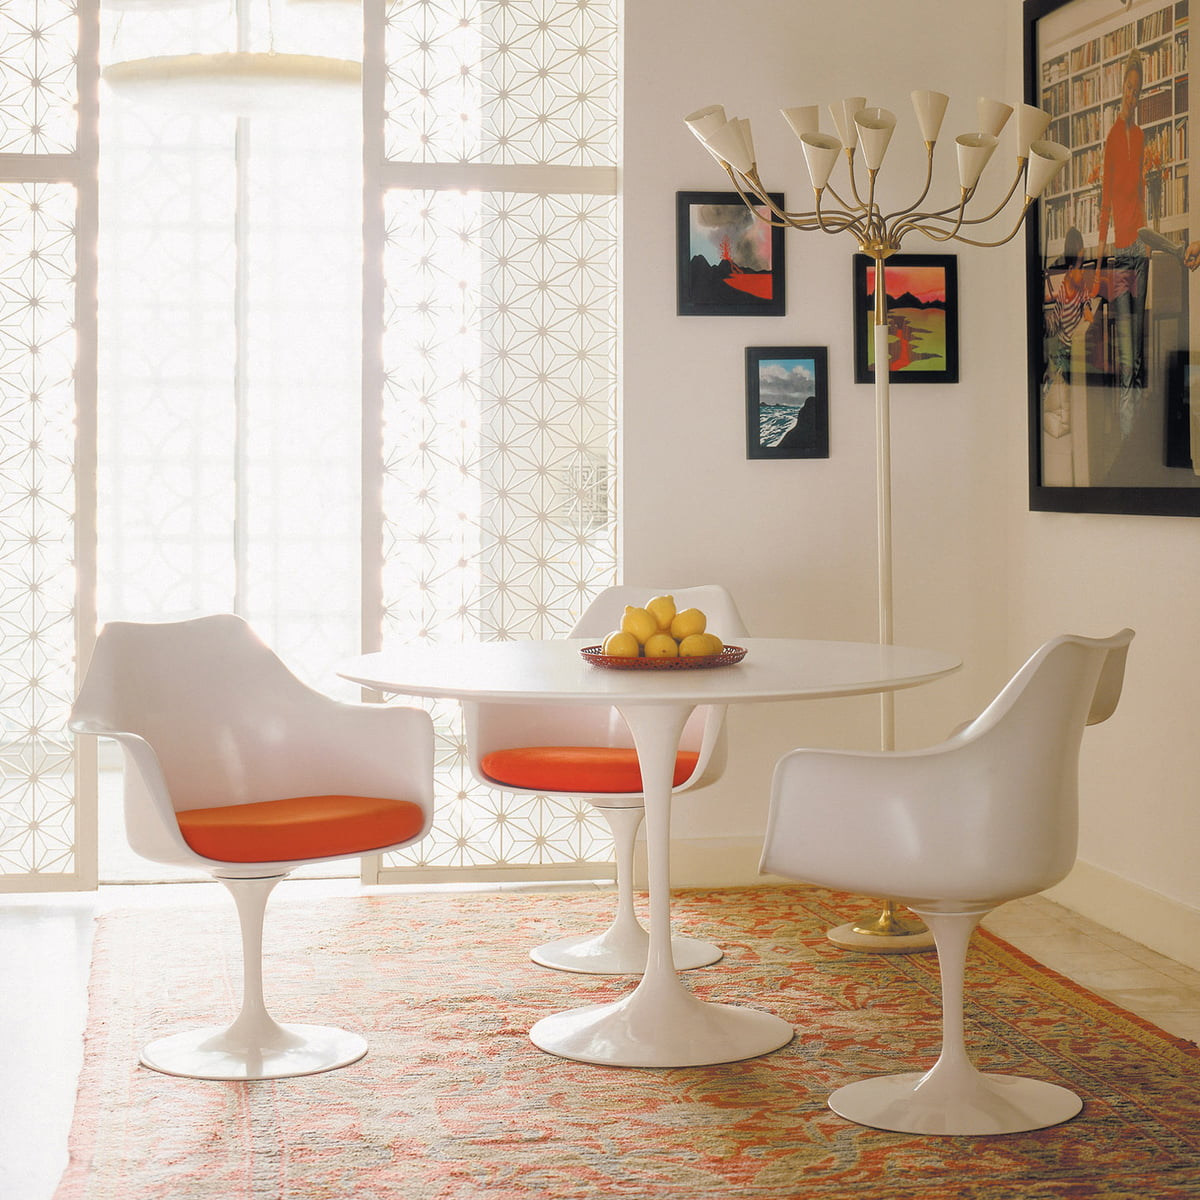 Knoll   Saarinen Tulip Chair, Swivel, Seat Cushion Avocado